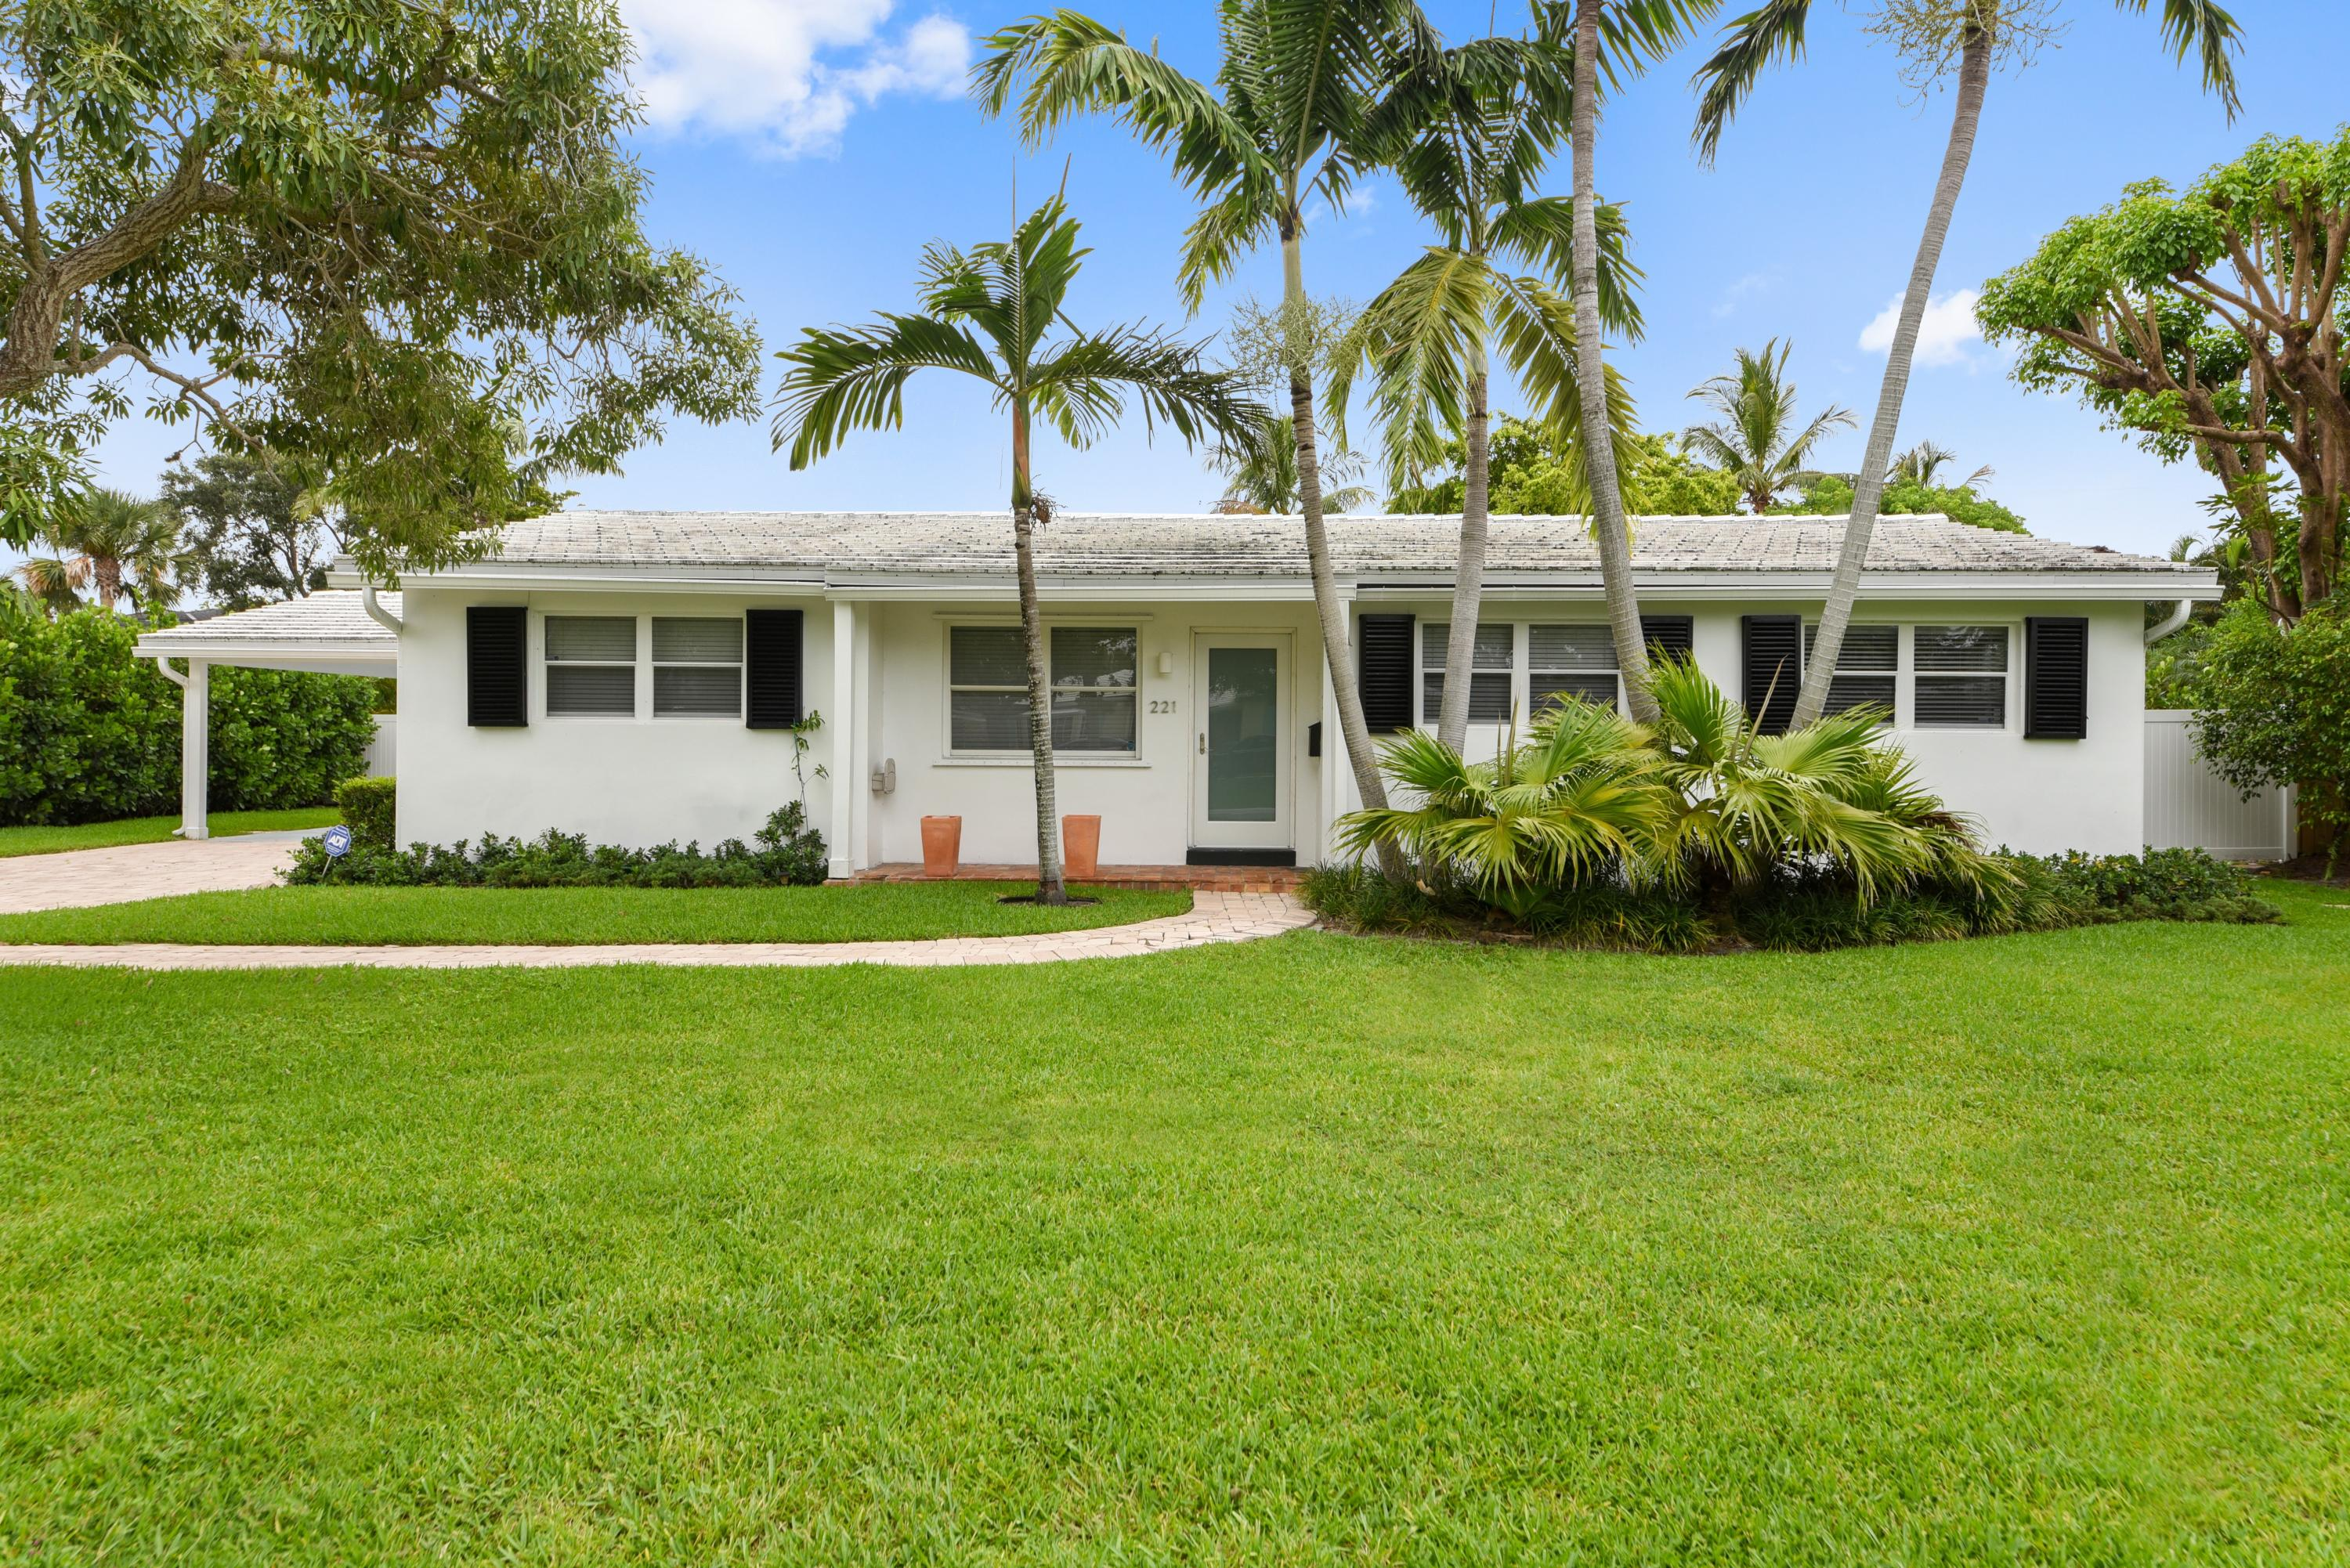 Home for sale in MIRAMAR IN West Palm Beach Florida